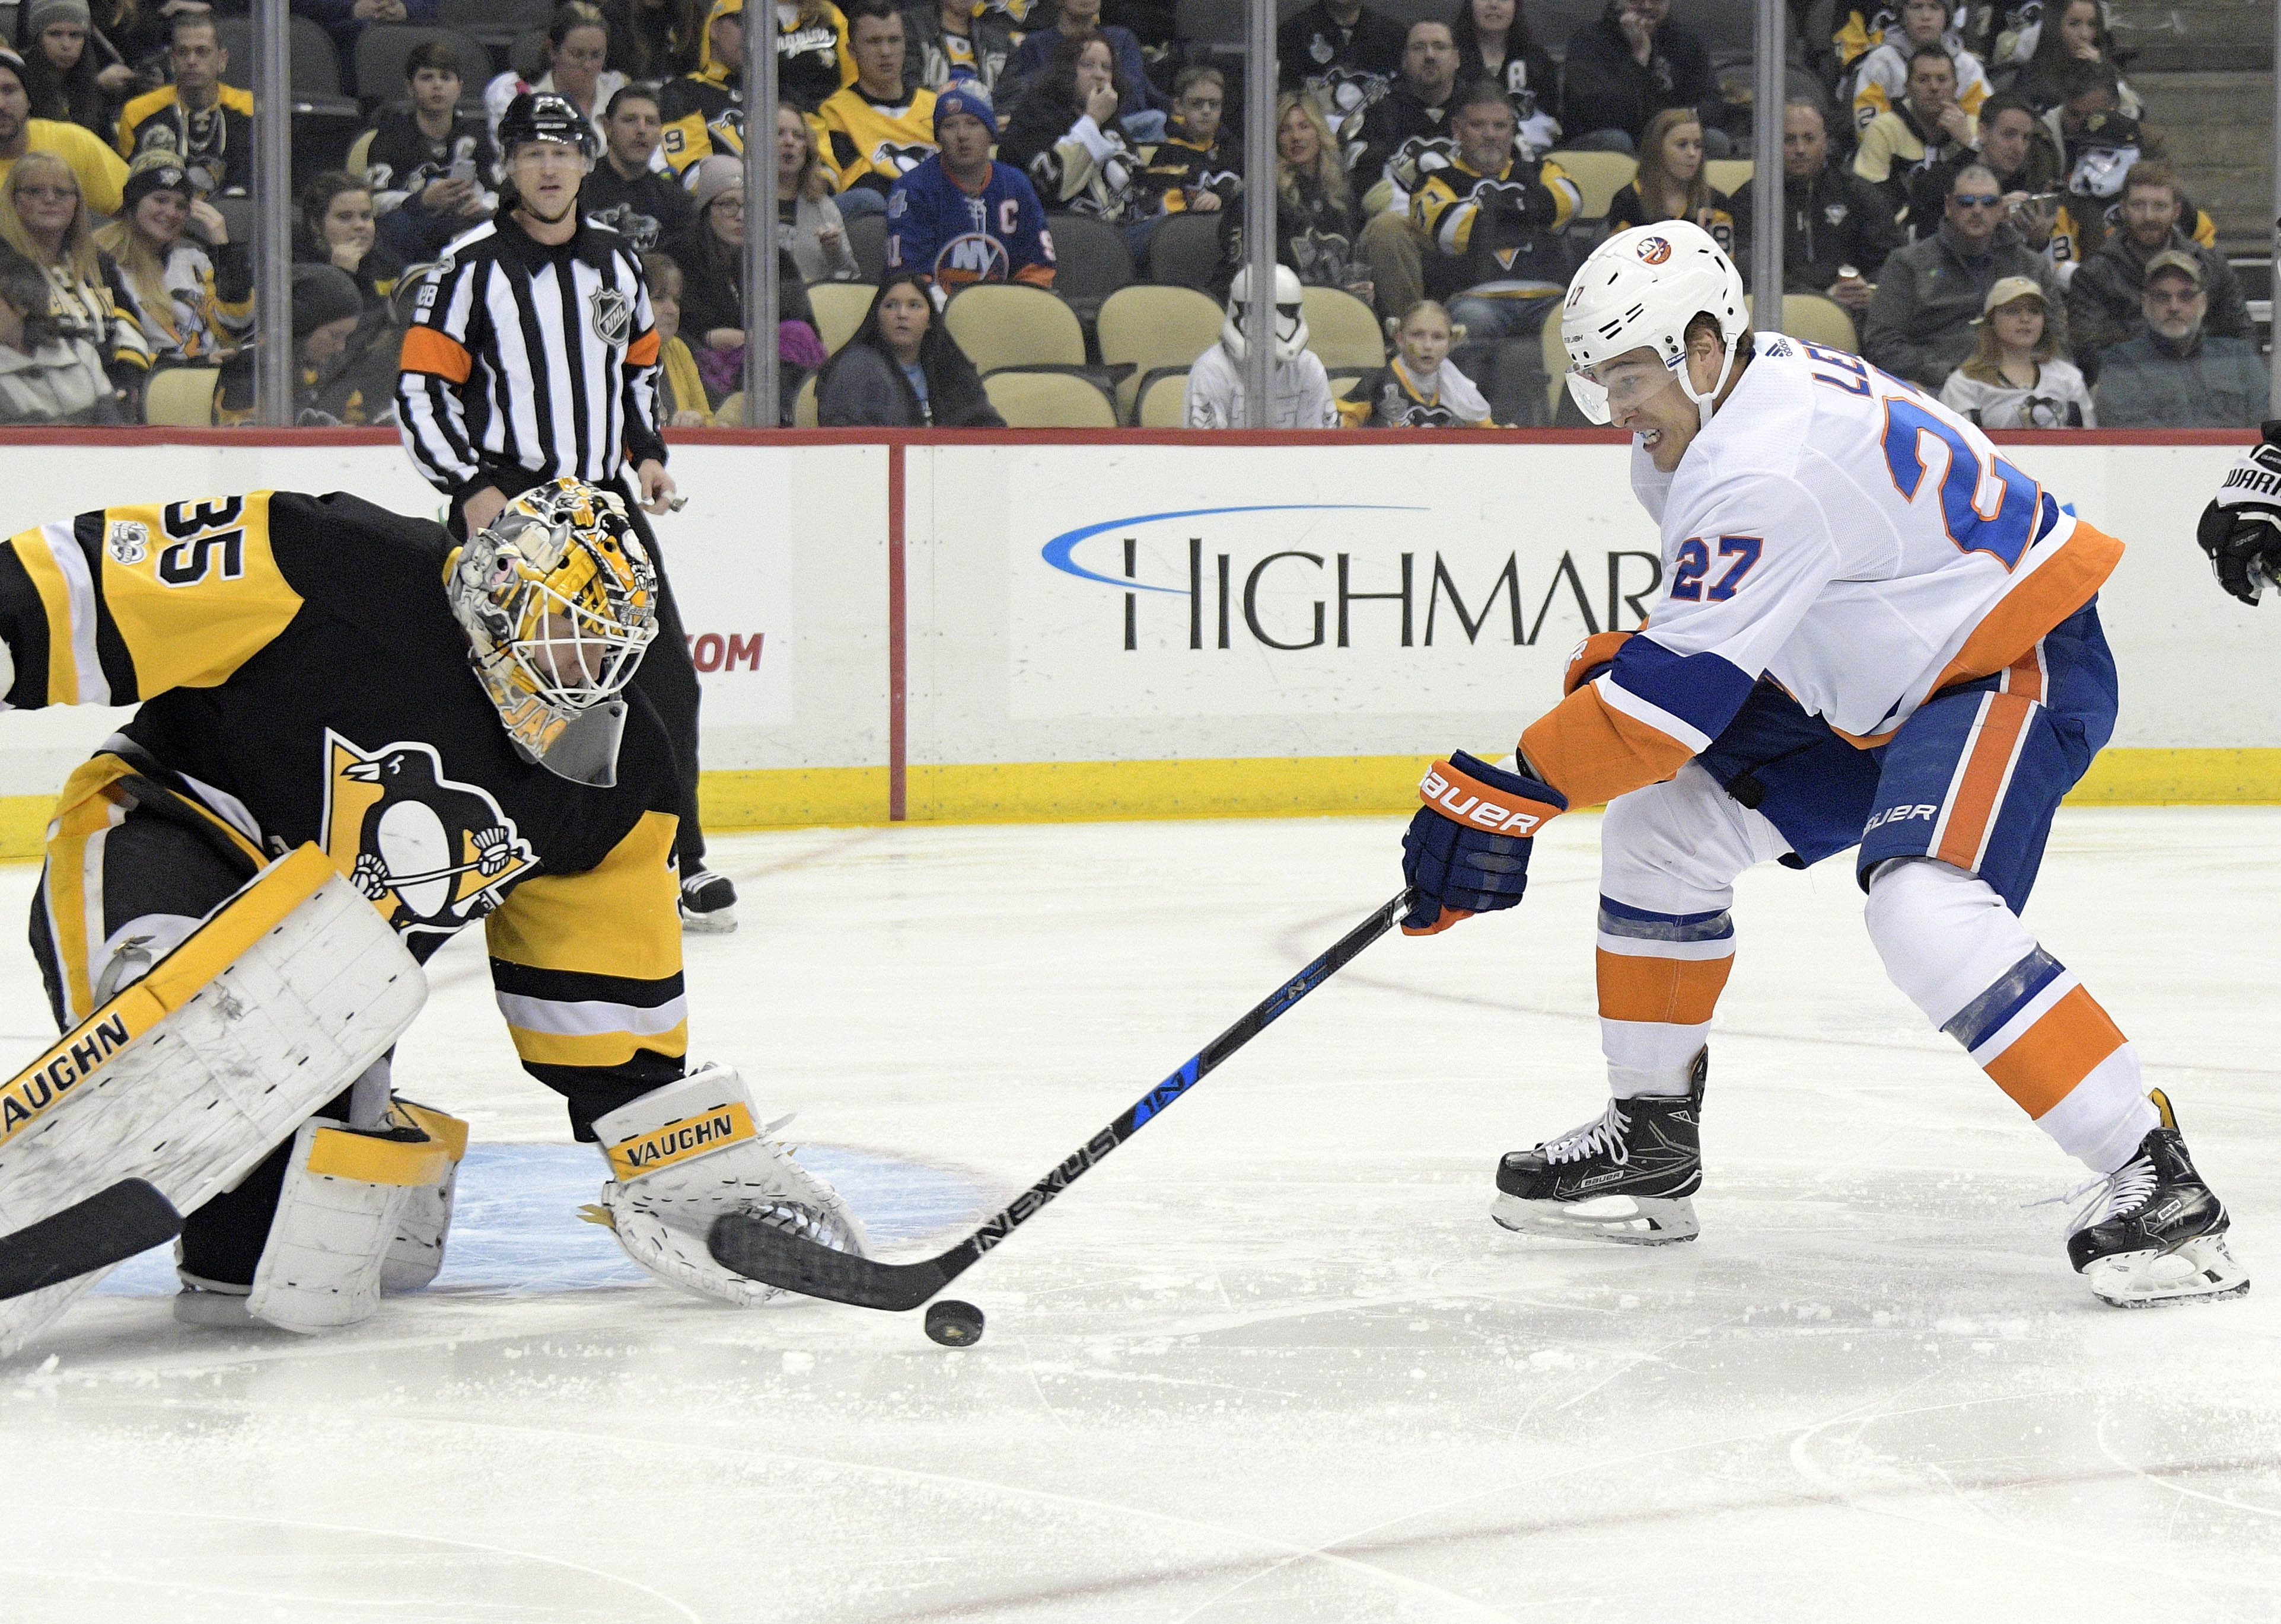 Isles Insights: Islanders Rally Late but Fall Short in 4-3 OT Loss to Pens